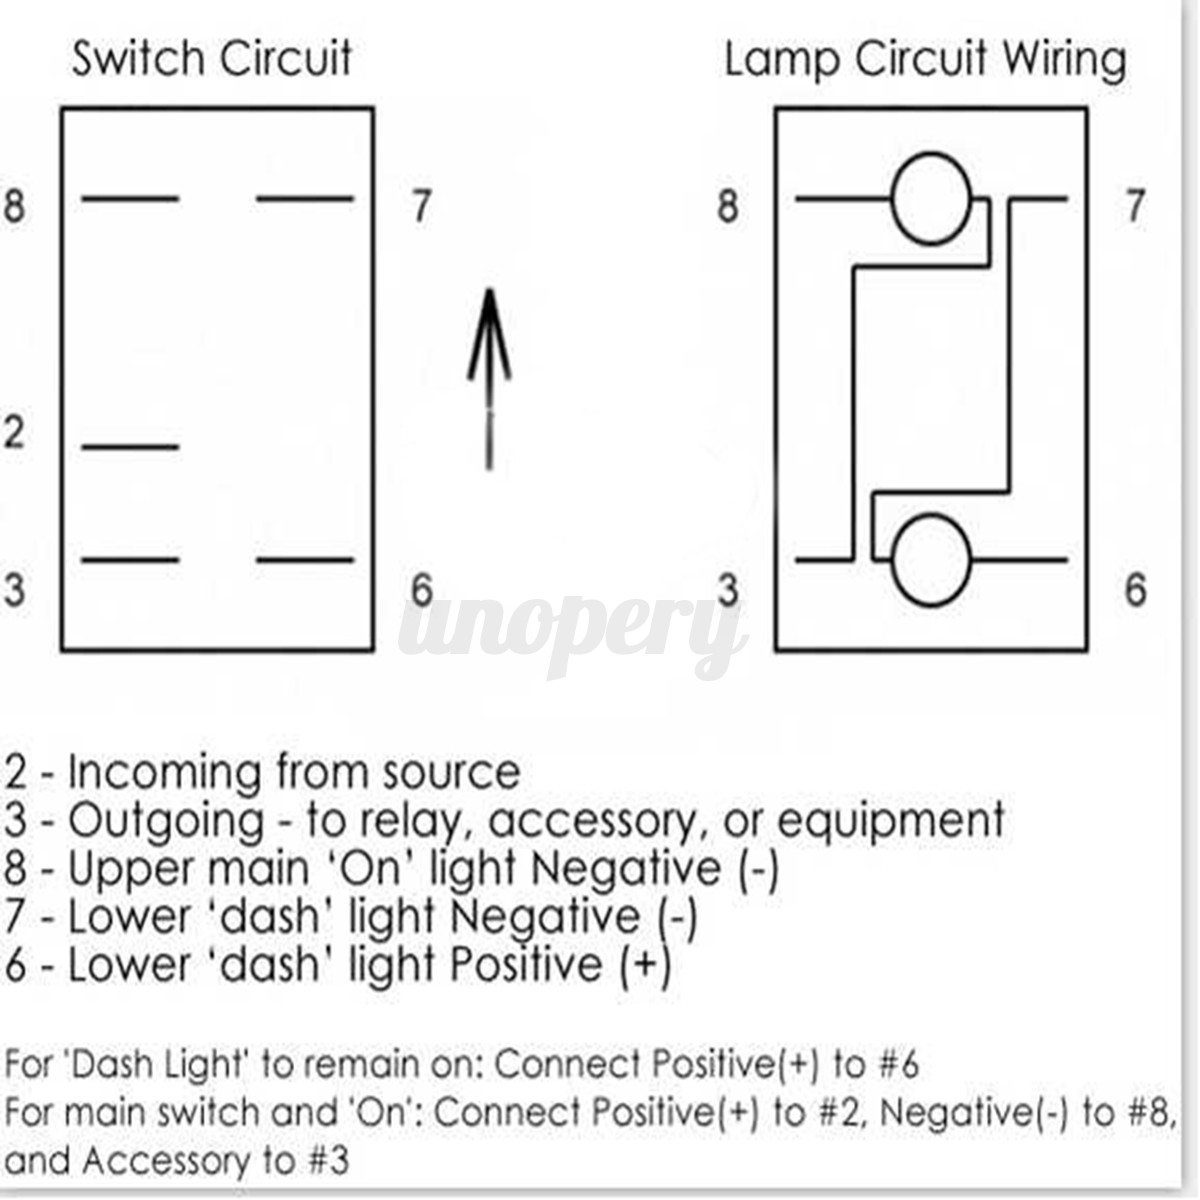 narva light wiring diagram narva image wiring diagram wiring diagram for narva relay wiring image wiring on narva light wiring diagram